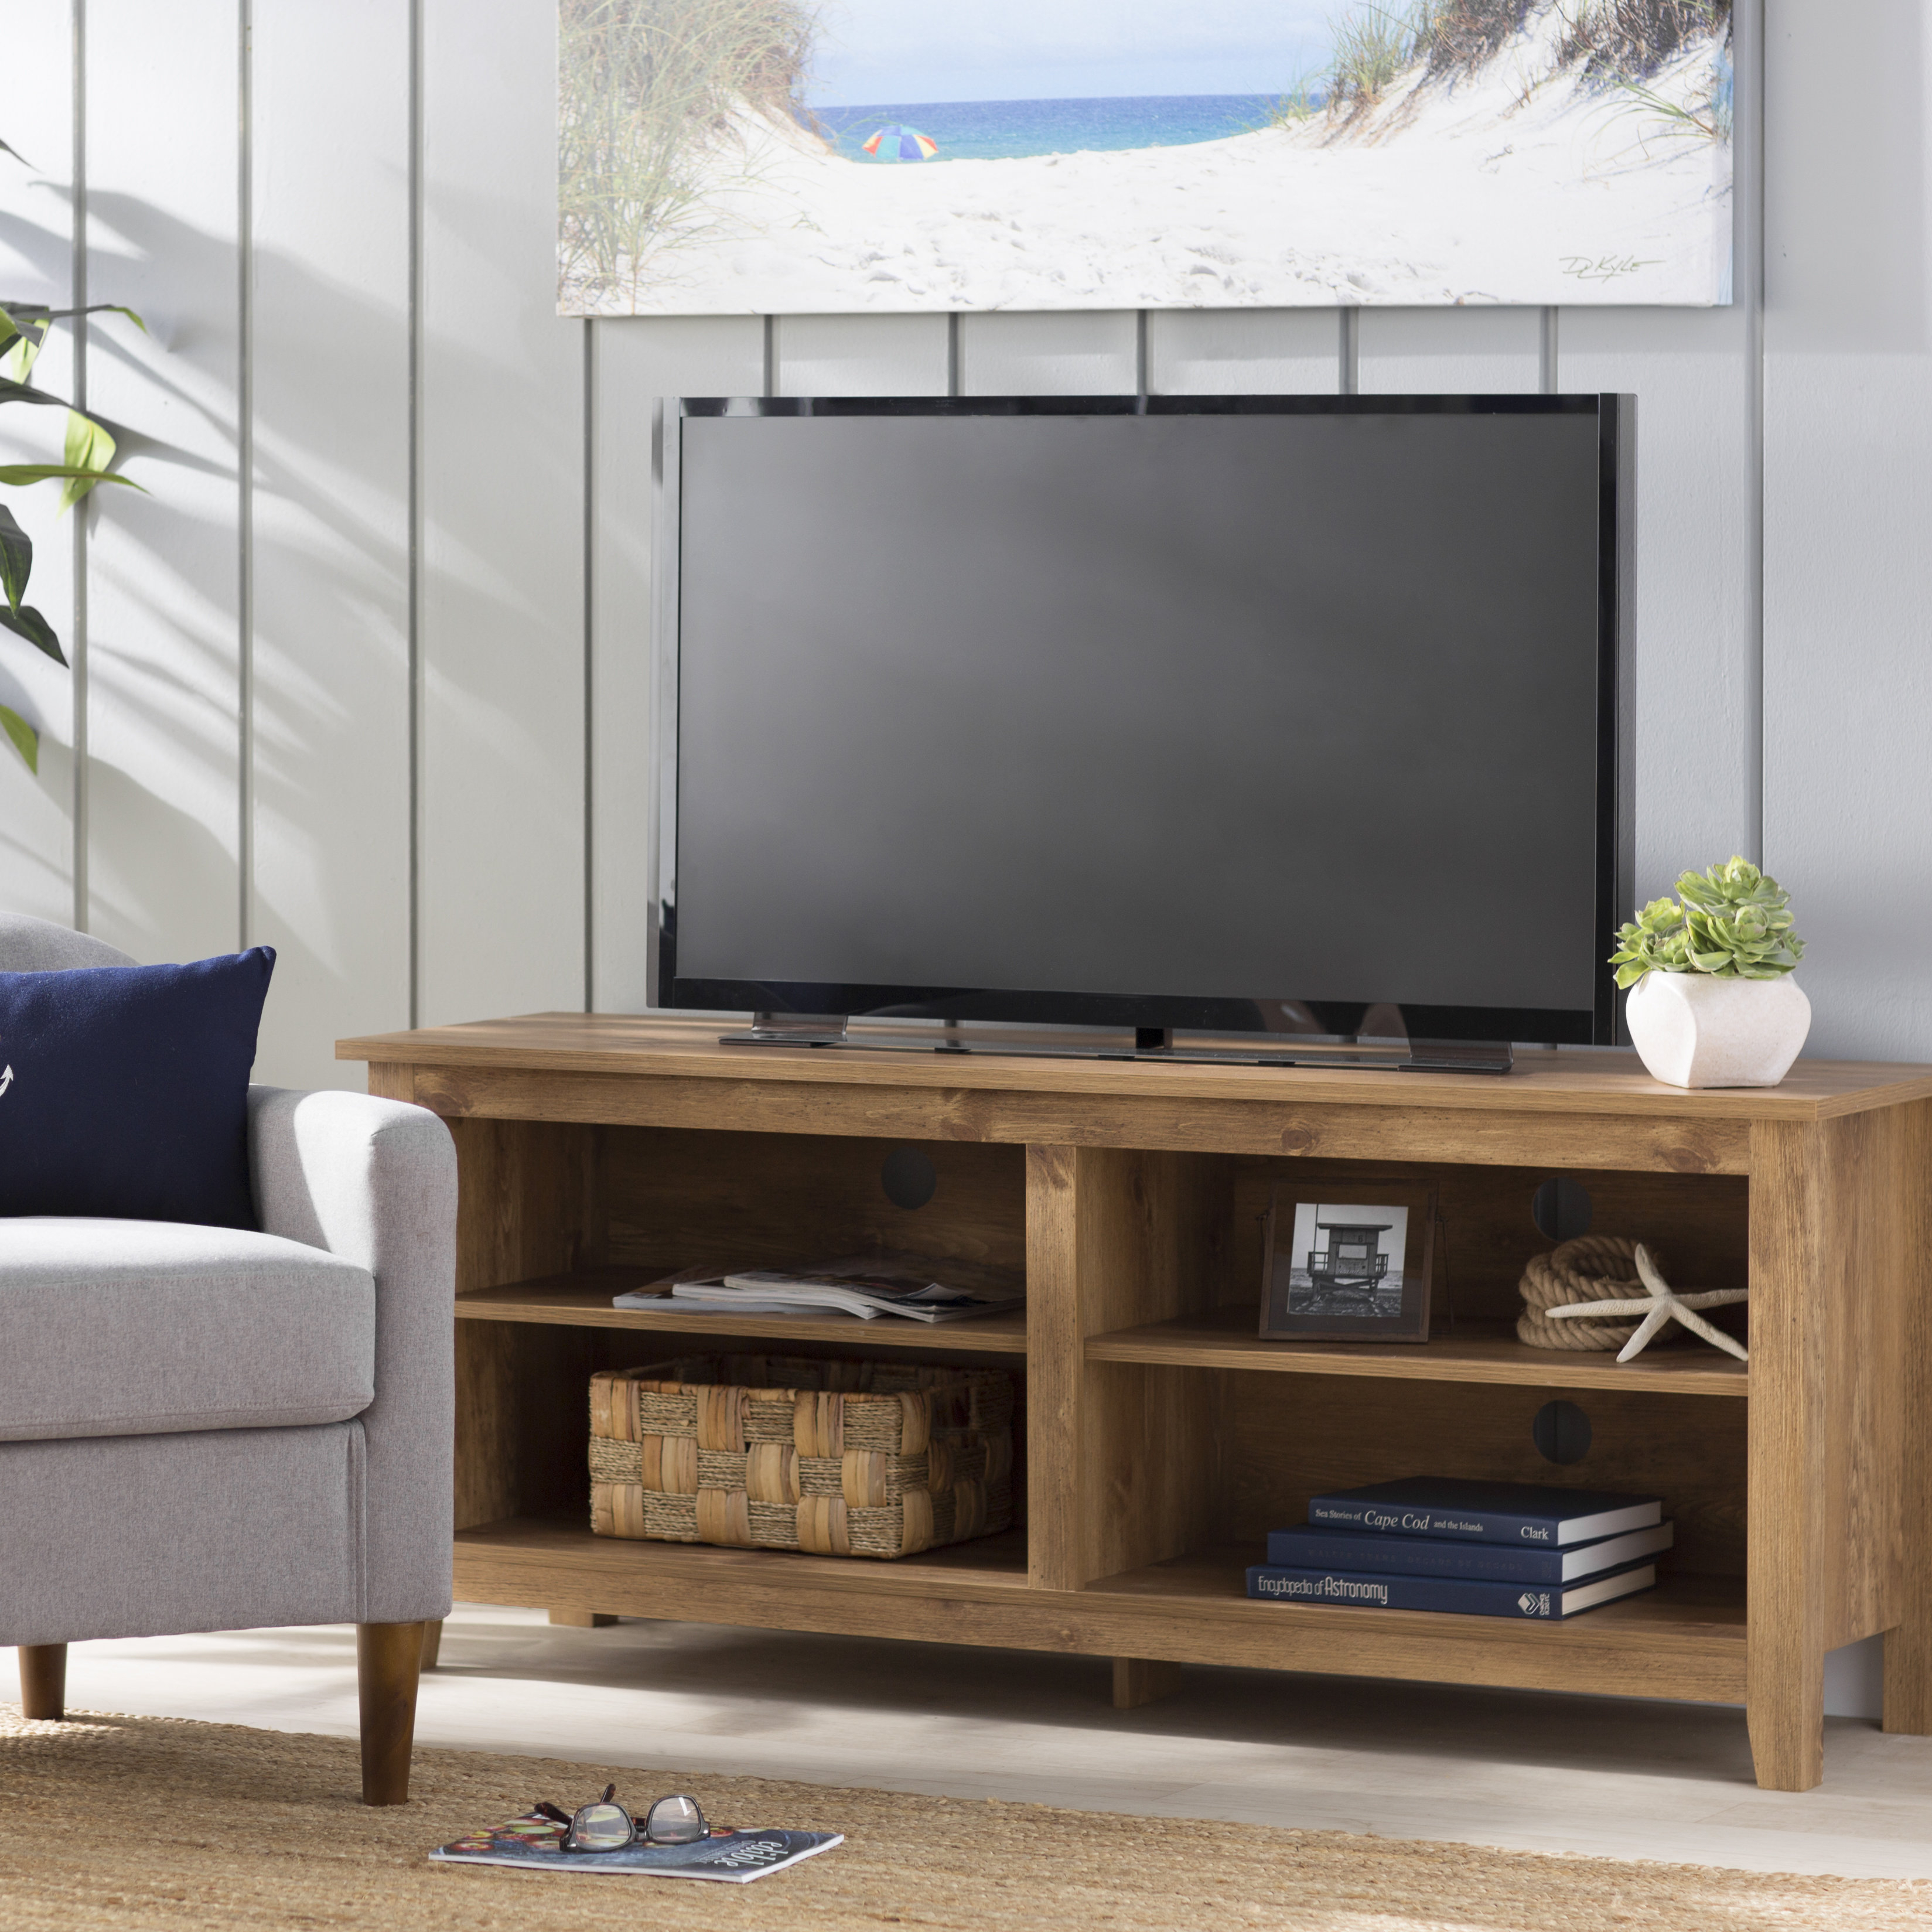 Tv Stands & Entertainment Centers You'll Love | Wayfair Within Sinclair White 54 Inch Tv Stands (View 30 of 30)